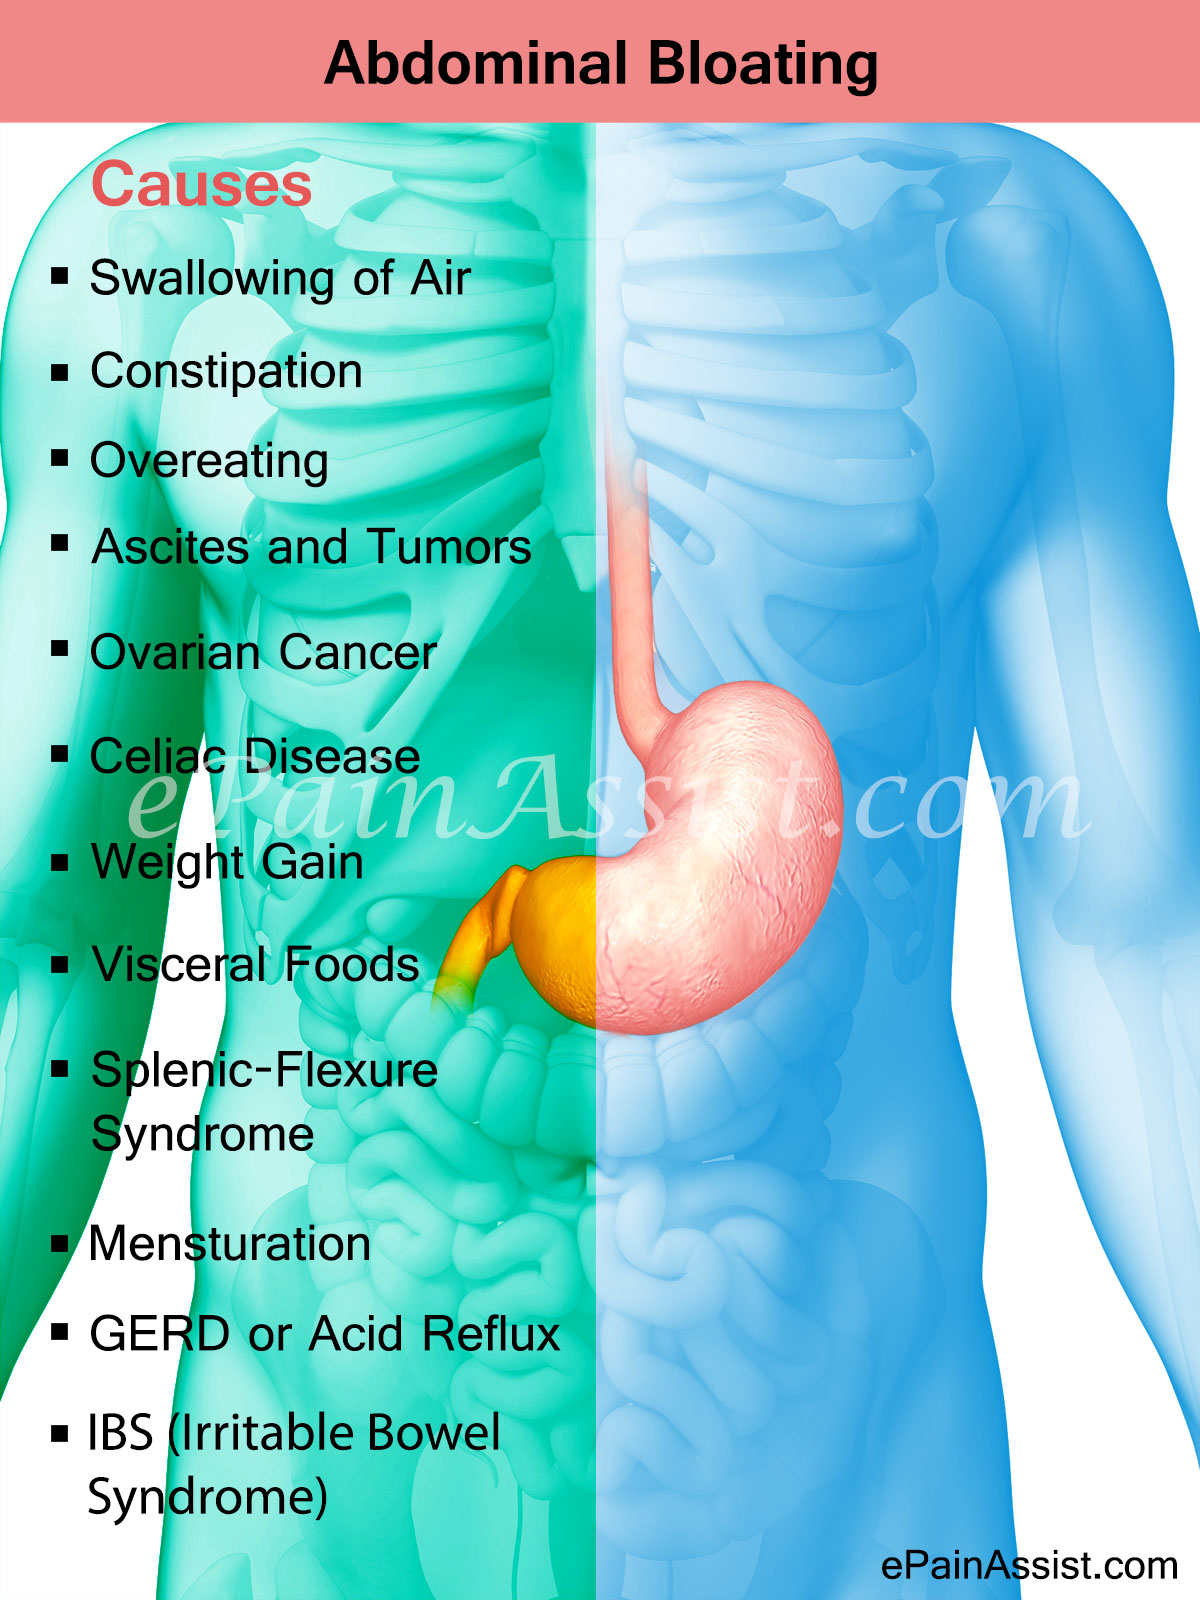 Causes of Abdominal Bloating - Infographic